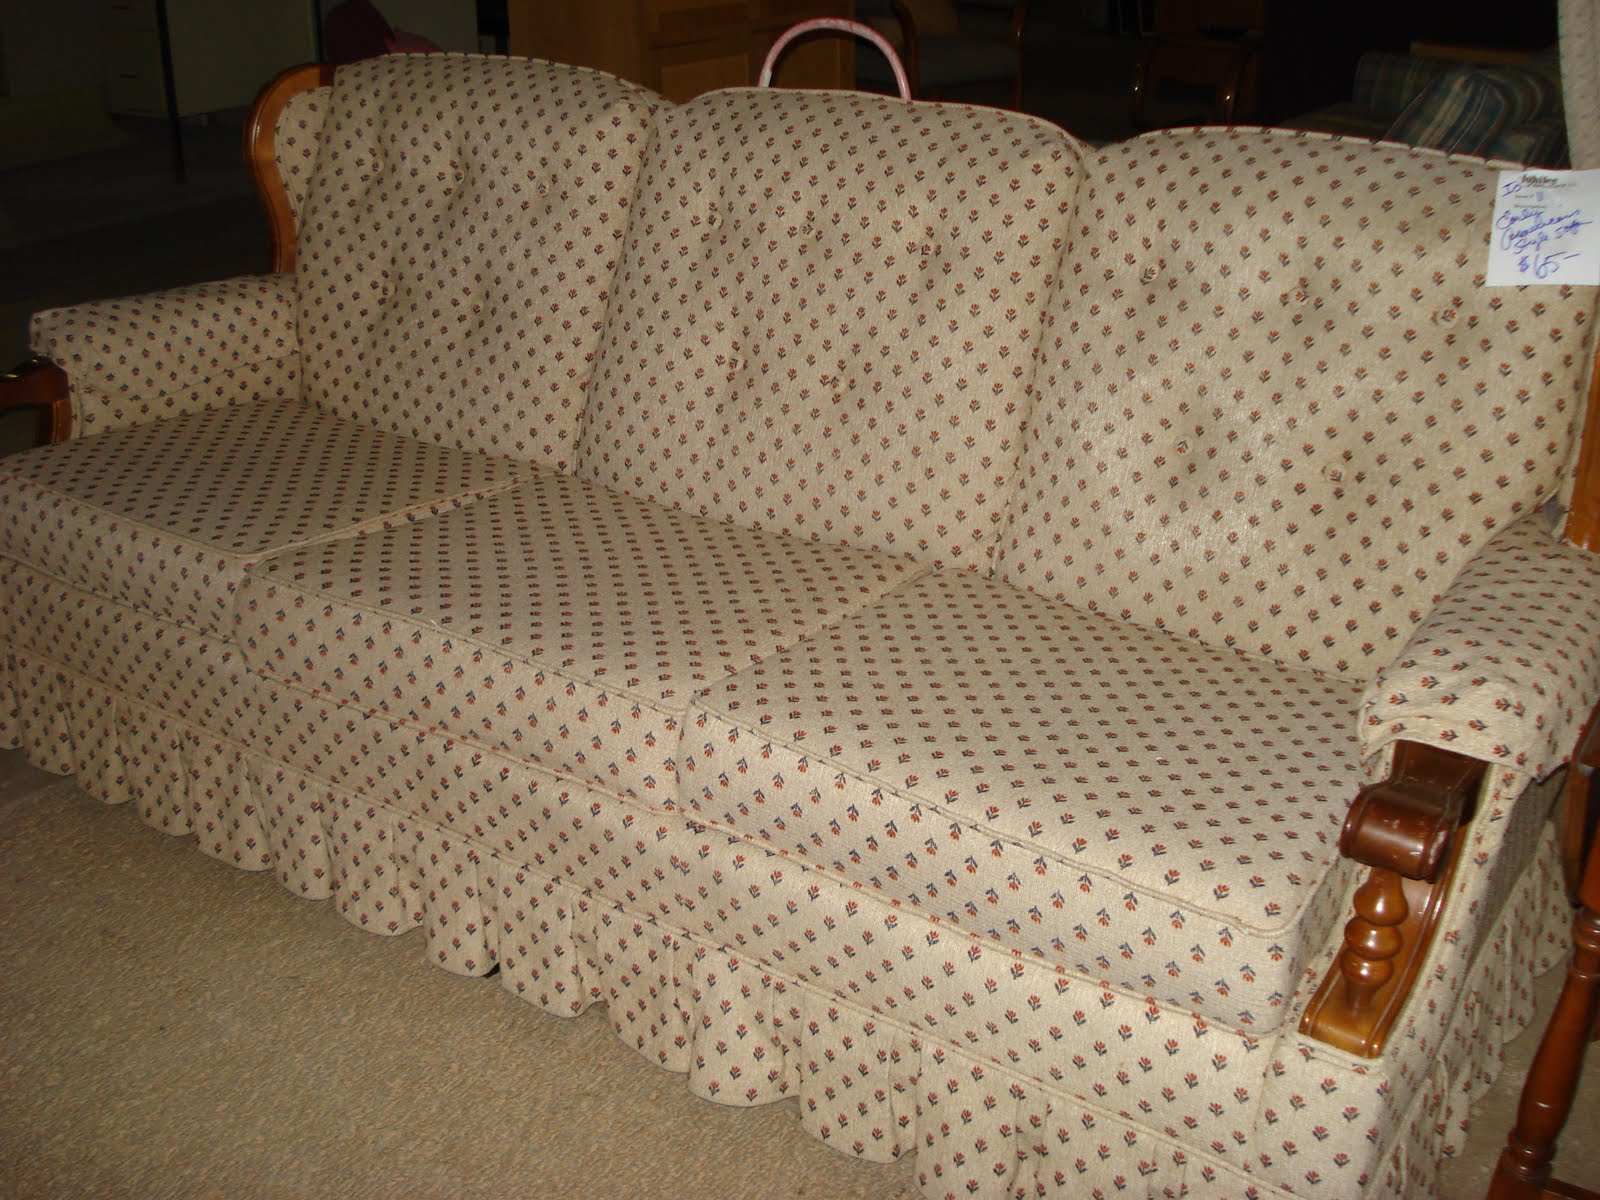 Early American Style Sofas Reversible Furniture Protectors For Sofa September 2010 Home Design Ideas Essentials